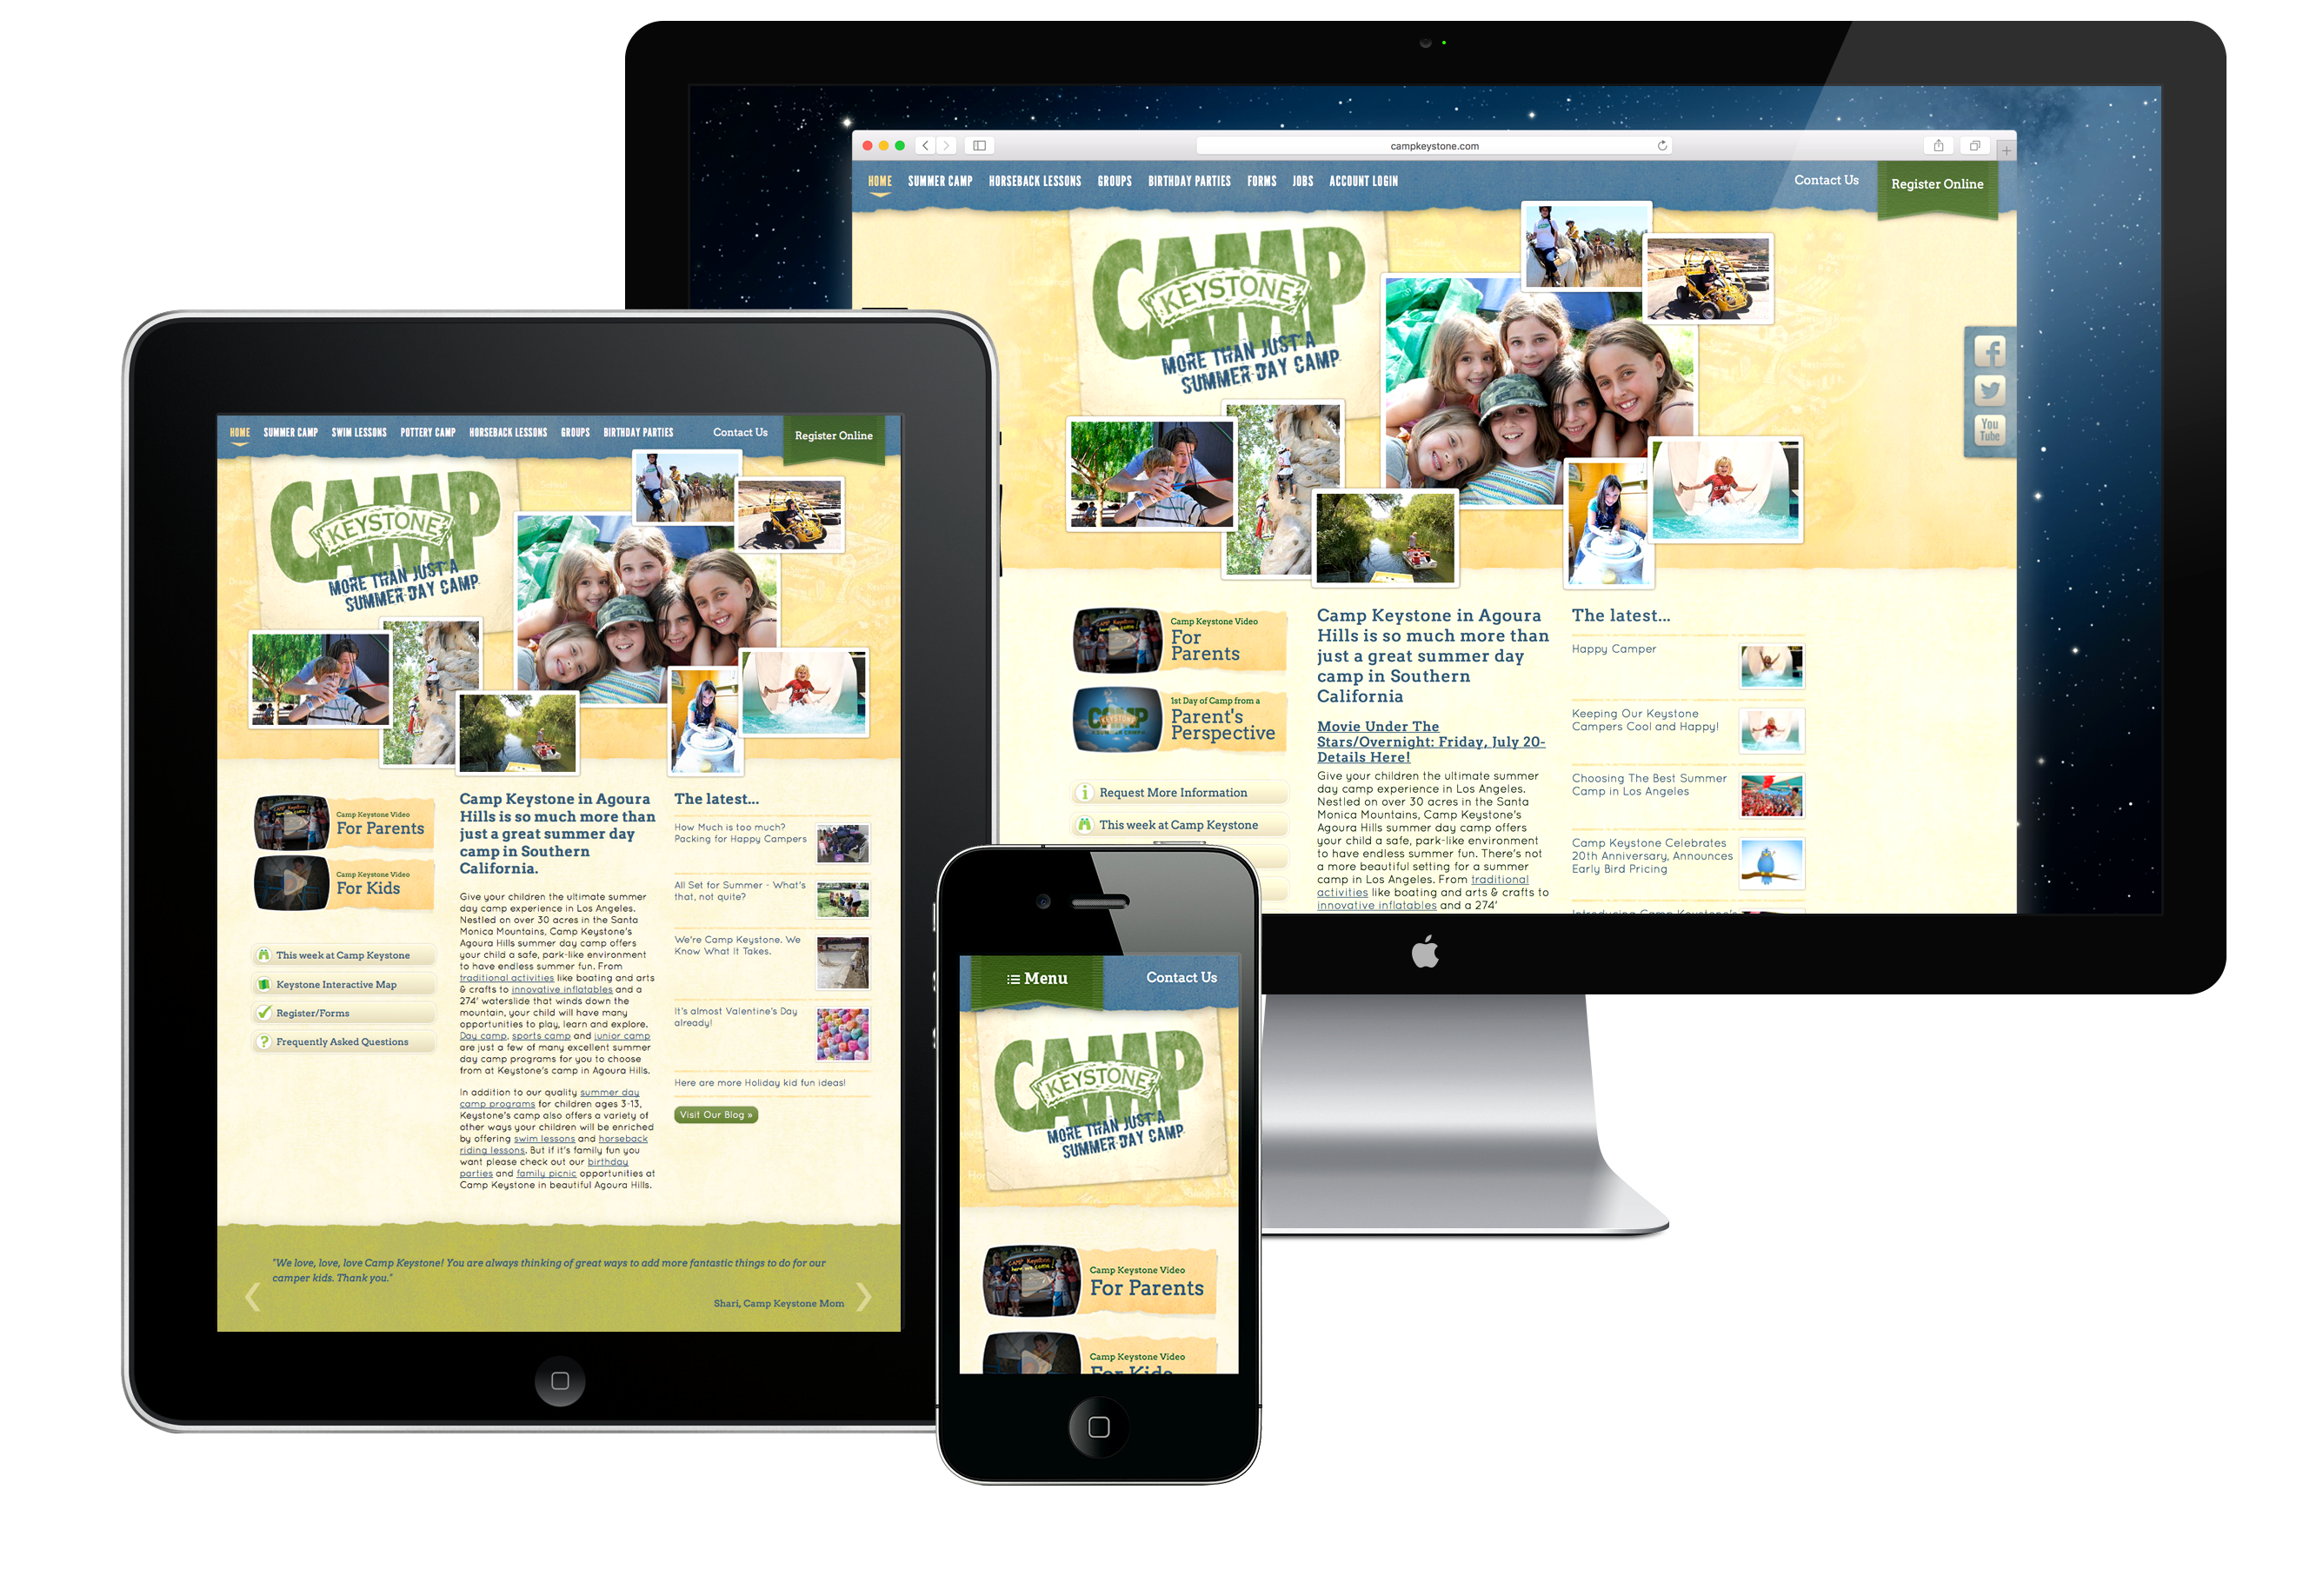 Camp Keystone Southern California, website design